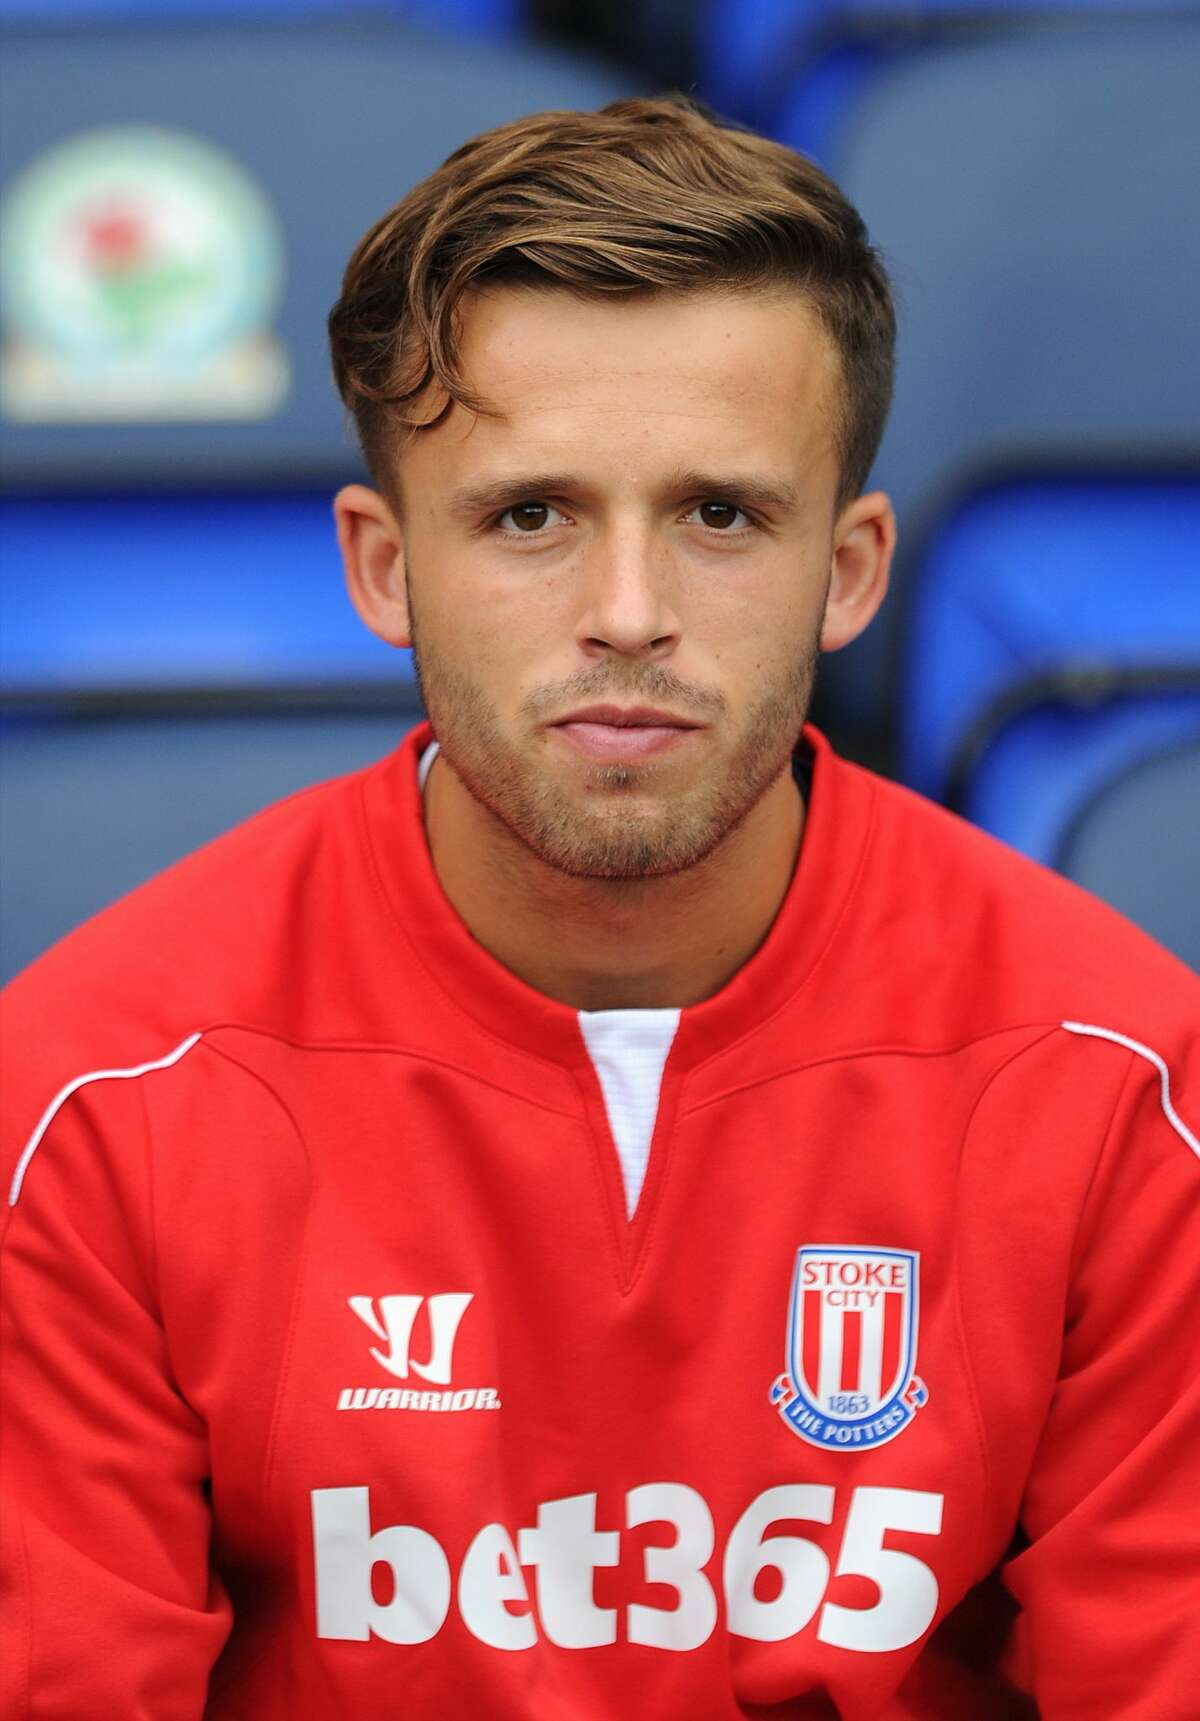 BLACKBURN, ENGLAND - AUGUST 03: Charles Ward of Stoke City looks on during the pre season friendly match between Blackburn Rovers and Stoke City at Ewood Park on August 03, 2014 in Blackburn, England. (Photo by Chris Brunskill/Getty Images)